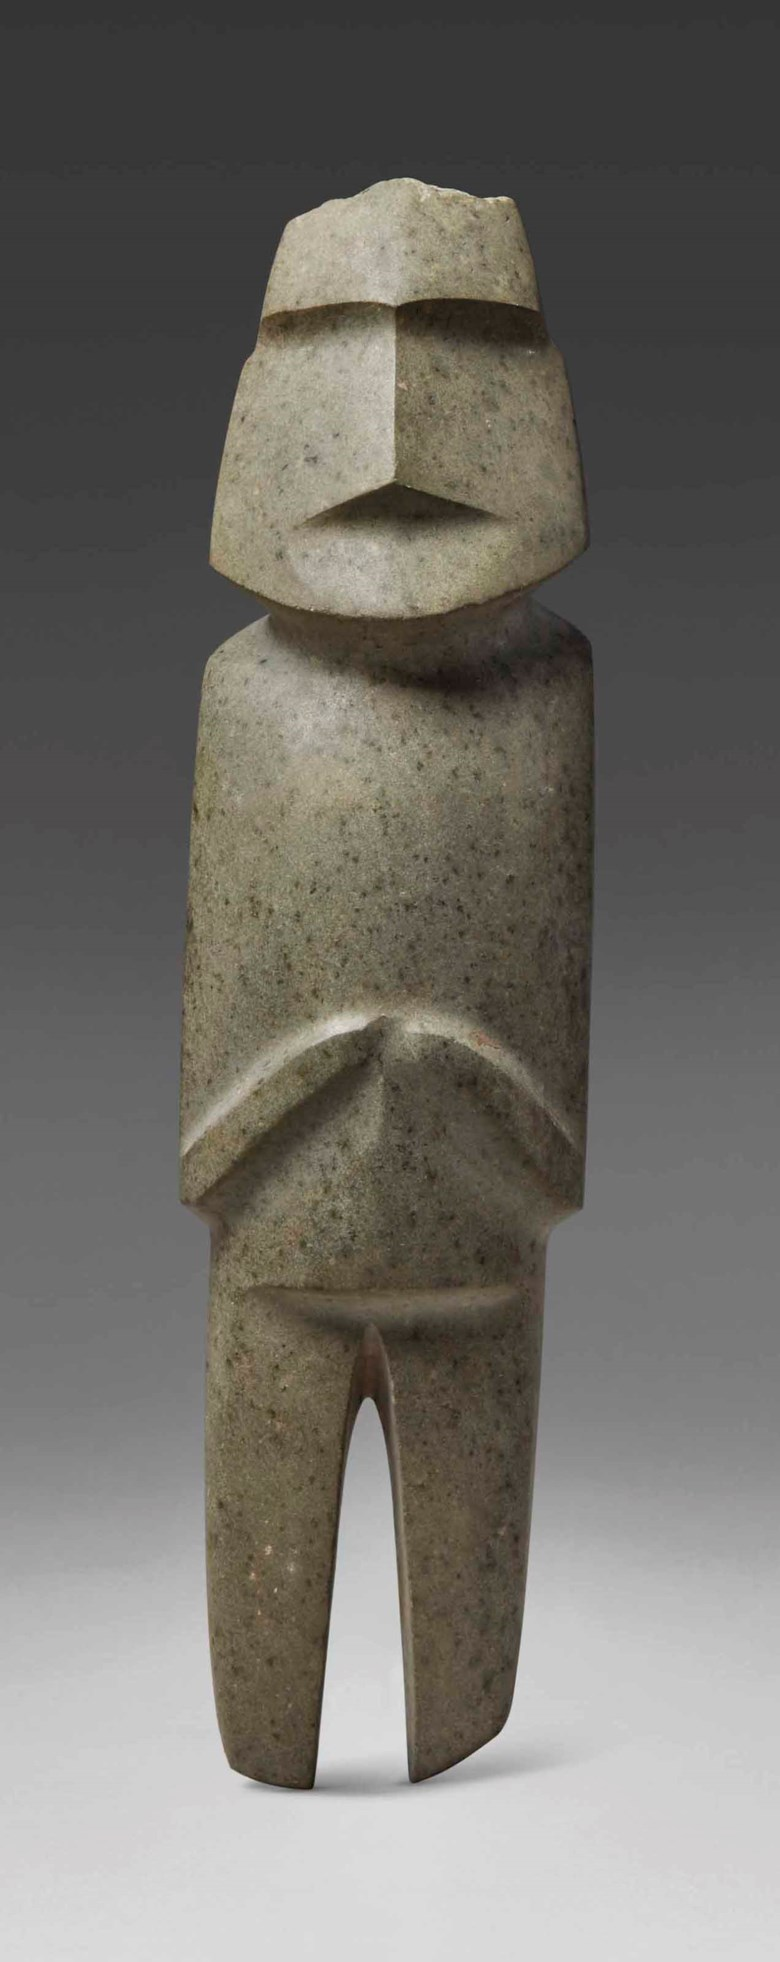 Imposing Mezcala stone figure, Type M10, Preclassic, circa 300-100 B.C. Height 33 cm (13  in). Sold for €439,500 in A Quantum of History The Prigogine Collection on 9 April 2018  at Christie's in Paris